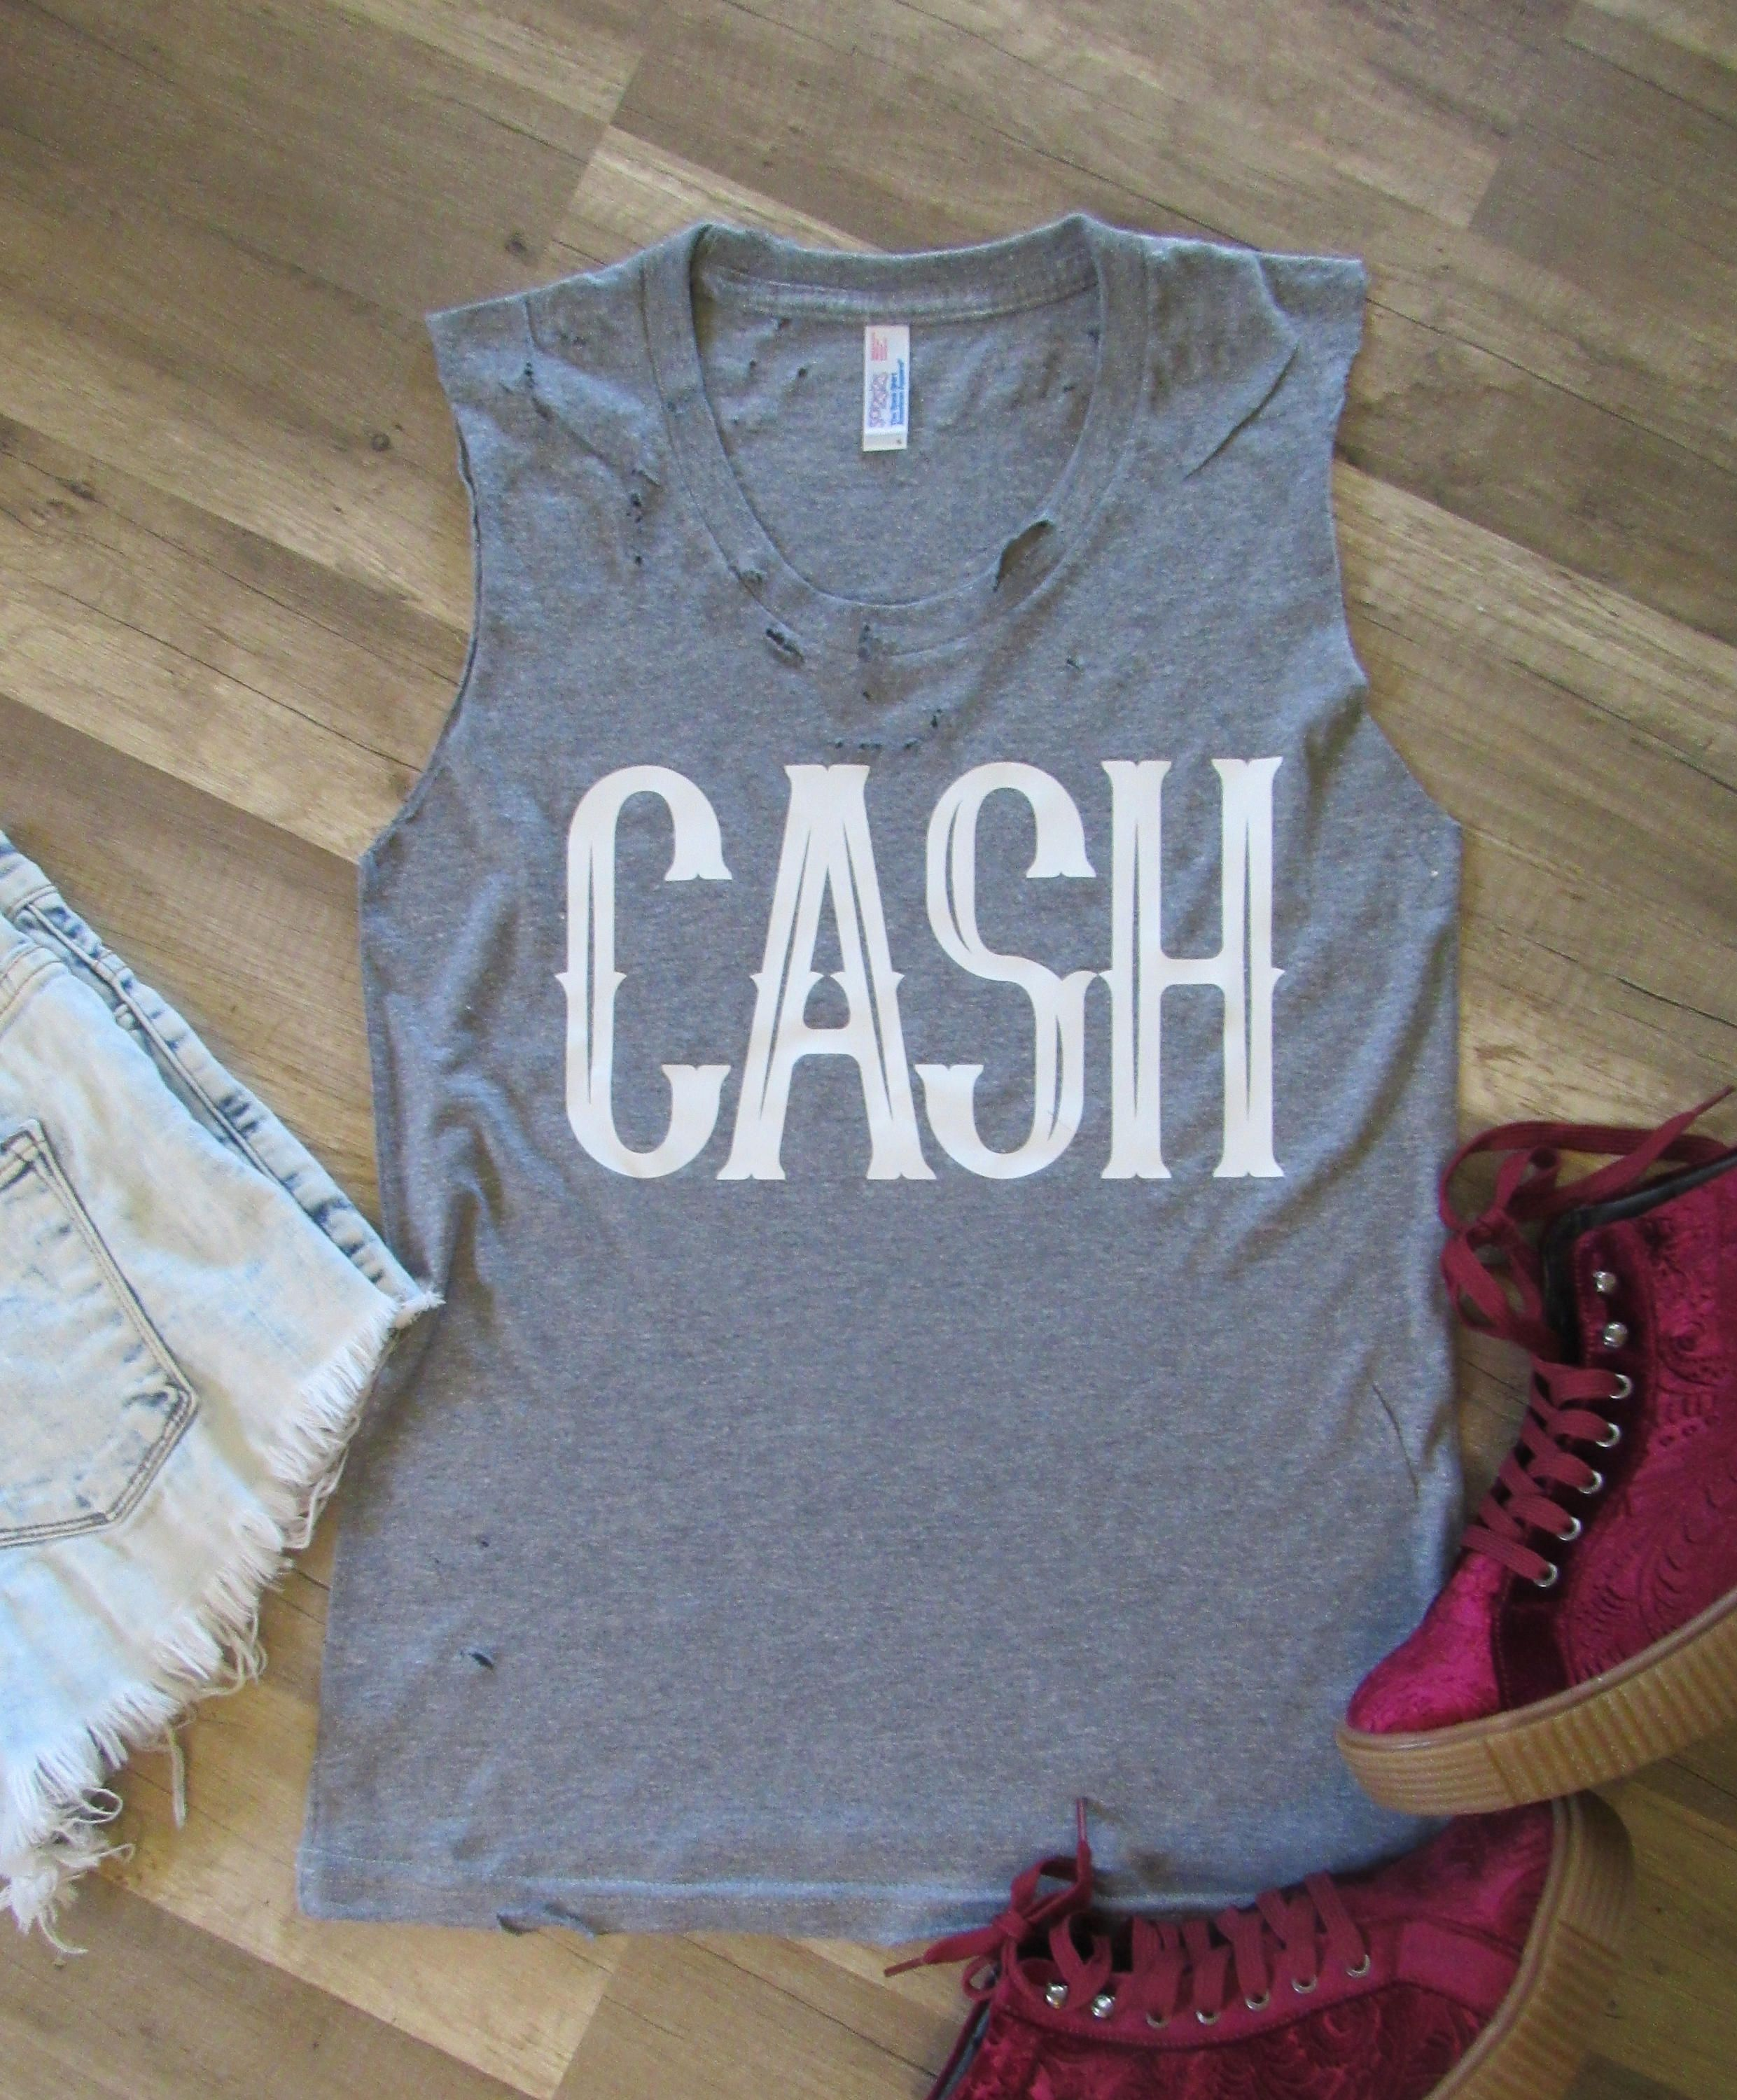 9a9315f1bbe68b CASH  Johnny Cash  Tattered   Torn Vintage muscle tank by dirtroadavenue on  Etsy